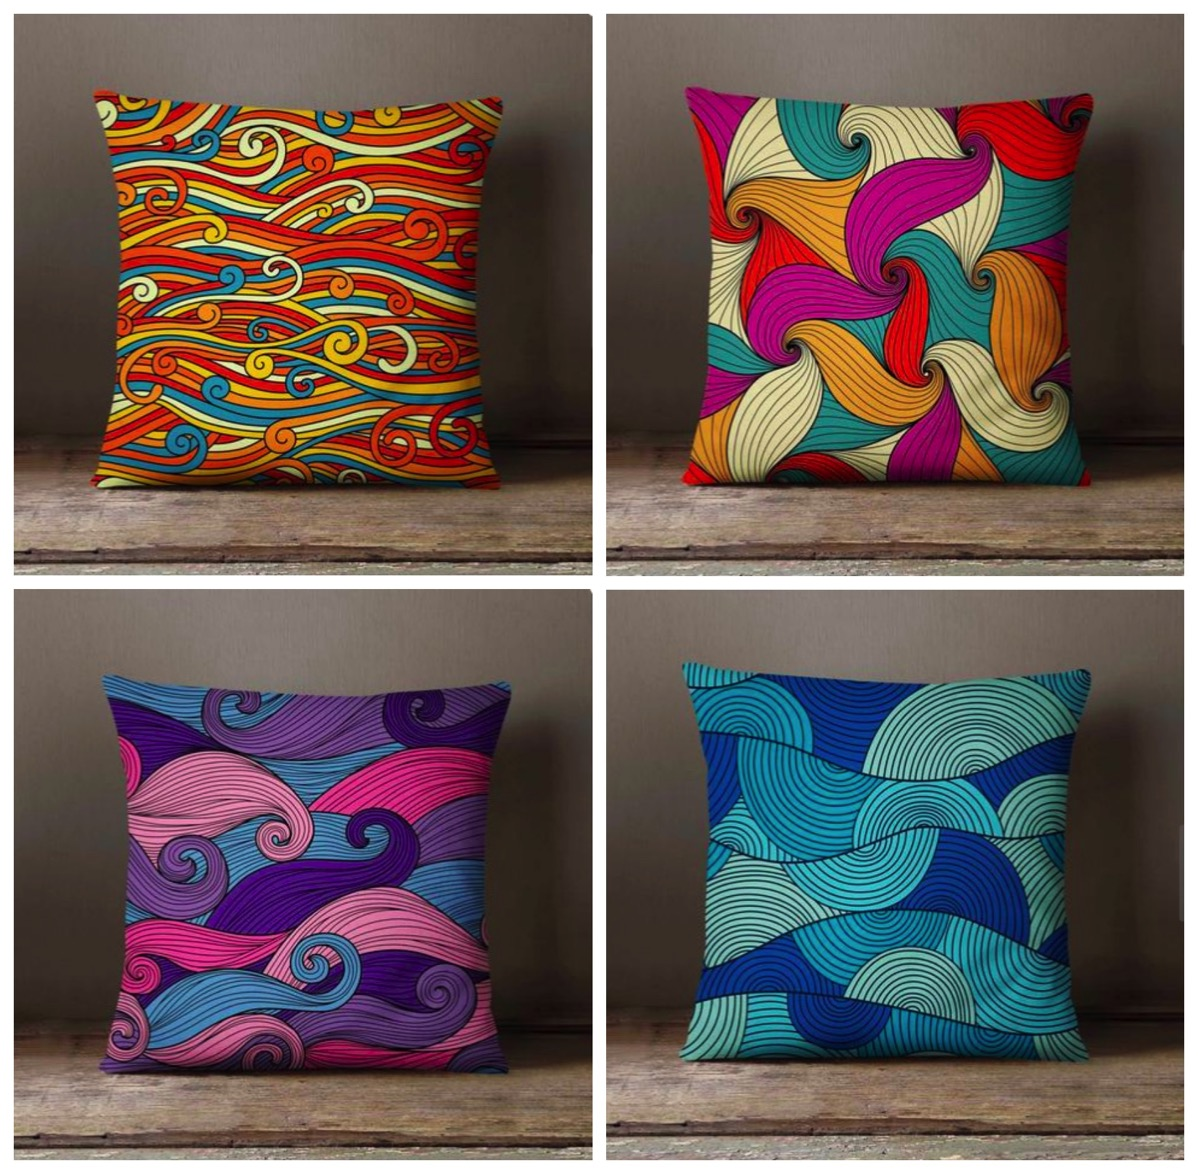 Teide etsy shop colorful pillows decorative pillows unique bold and colorful pillows dig and hang